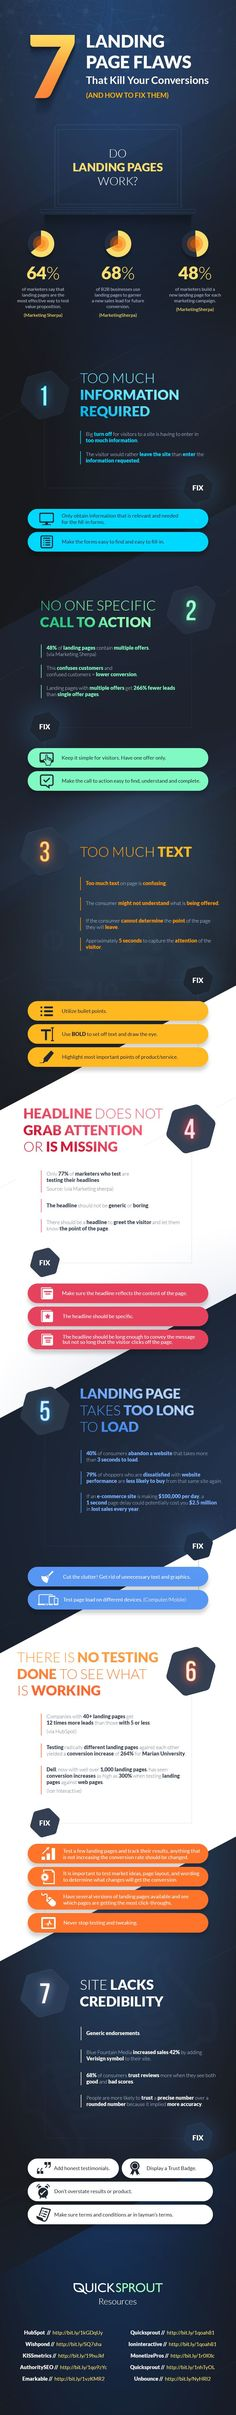 7 Landing Page Flaws That Kill Your Conversions (and How to Fix Them) from Neil Patel at Quicksprout, July 2014. Good, practical, easy-to-implement advice founded by statistics in exchange for 3-5 minutes of your time.